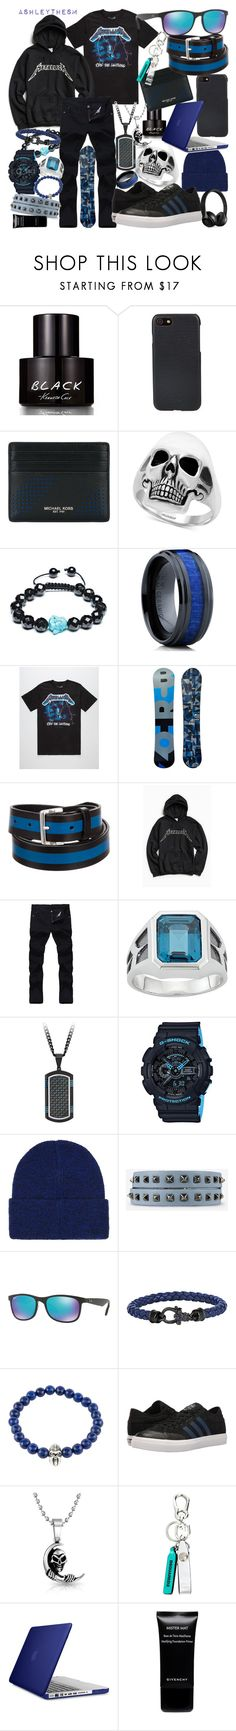 """⚡ Ride the Lightning ⚡ {men's}"" by ashleythesm ❤ liked on Polyvore featuring Kenneth Cole, Shinola, Michael Kors, Effy Jewelry, Bling Jewelry, Oliveti, Burton, Dsquared2, Urban Outfitters and G-Shock"